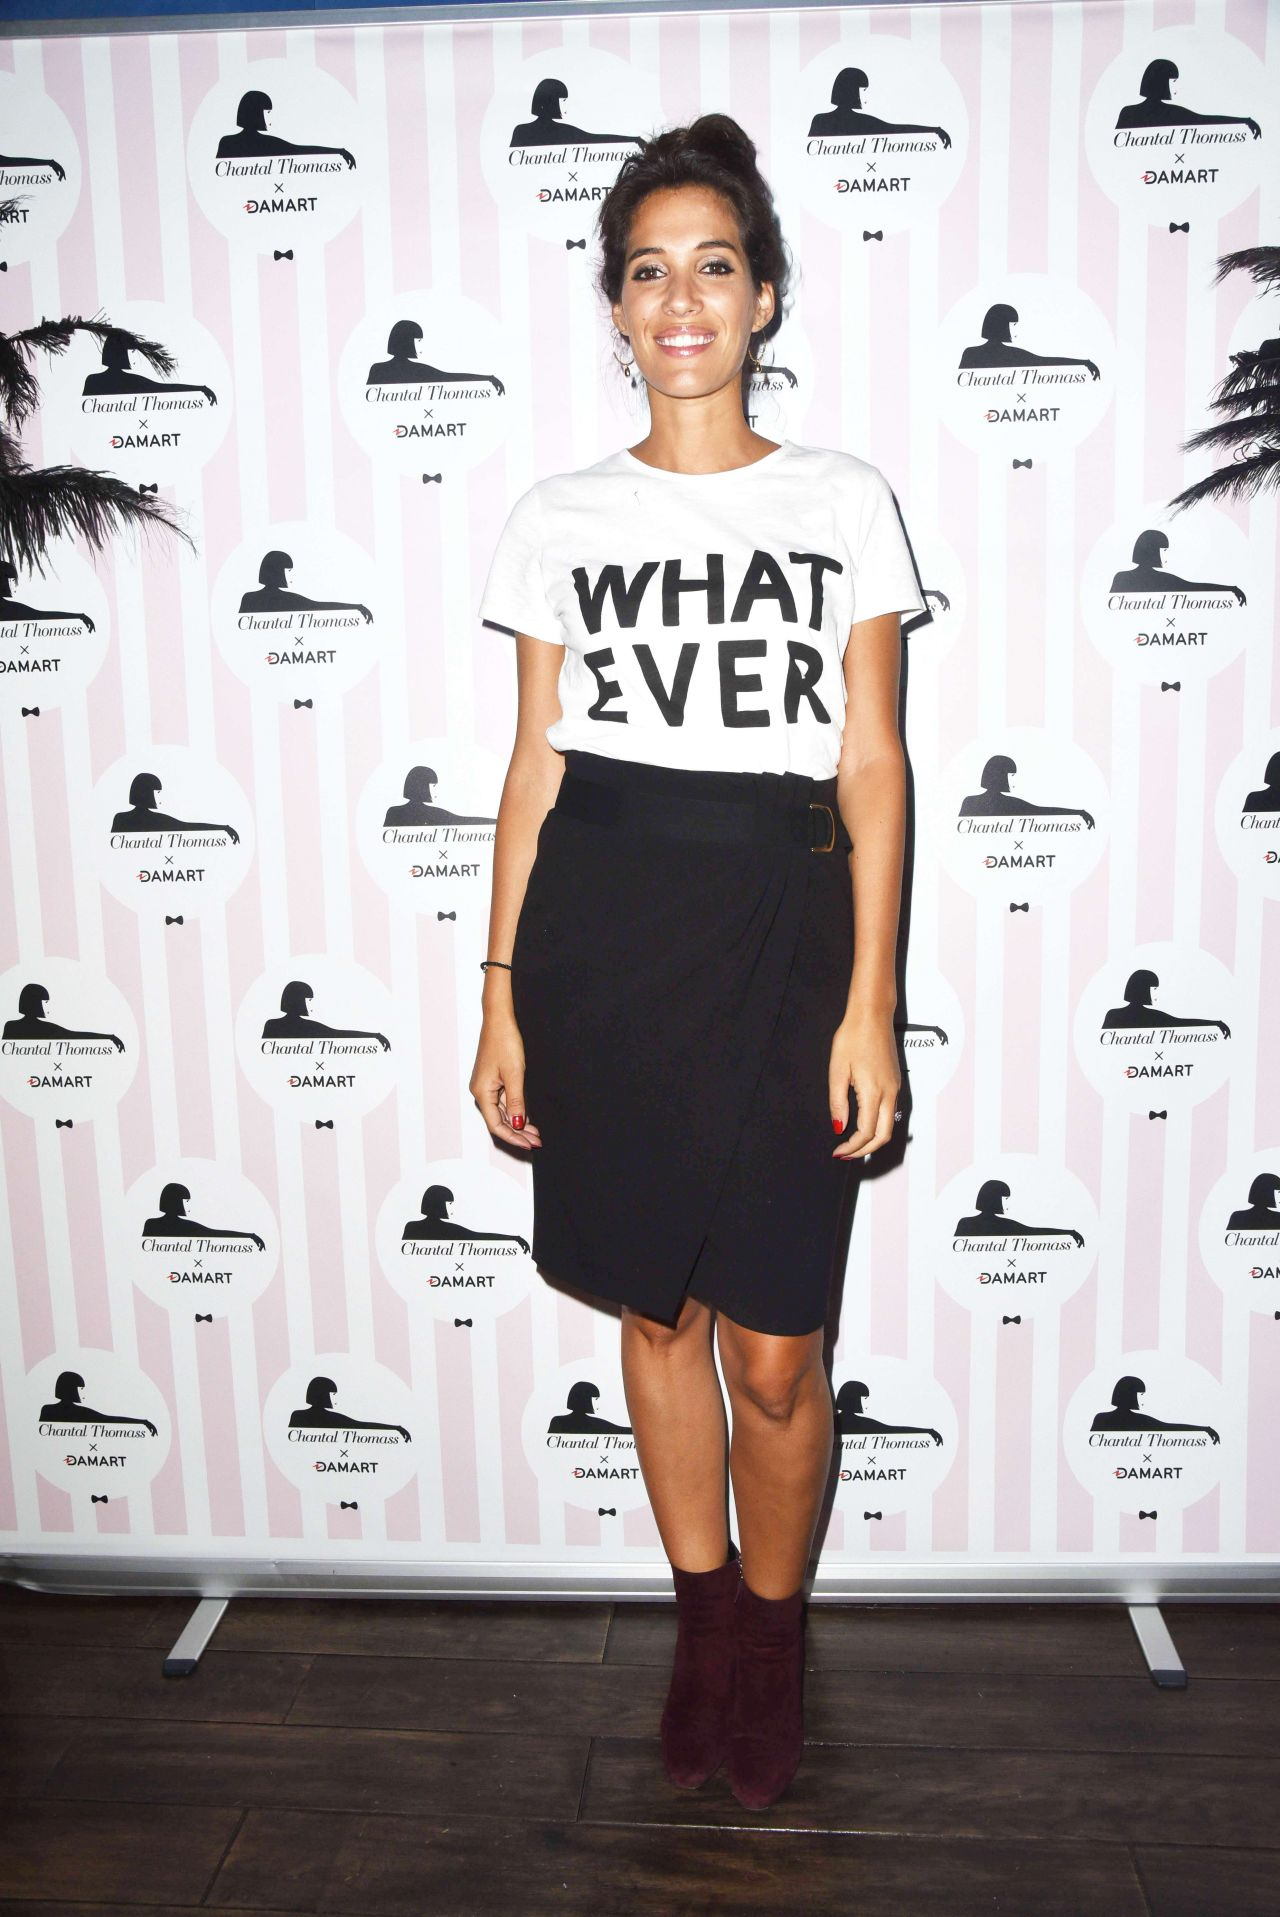 Laurie Cholewa – Chantal Thomass Damart Thermolactyl Show in Paris 09/14/2017